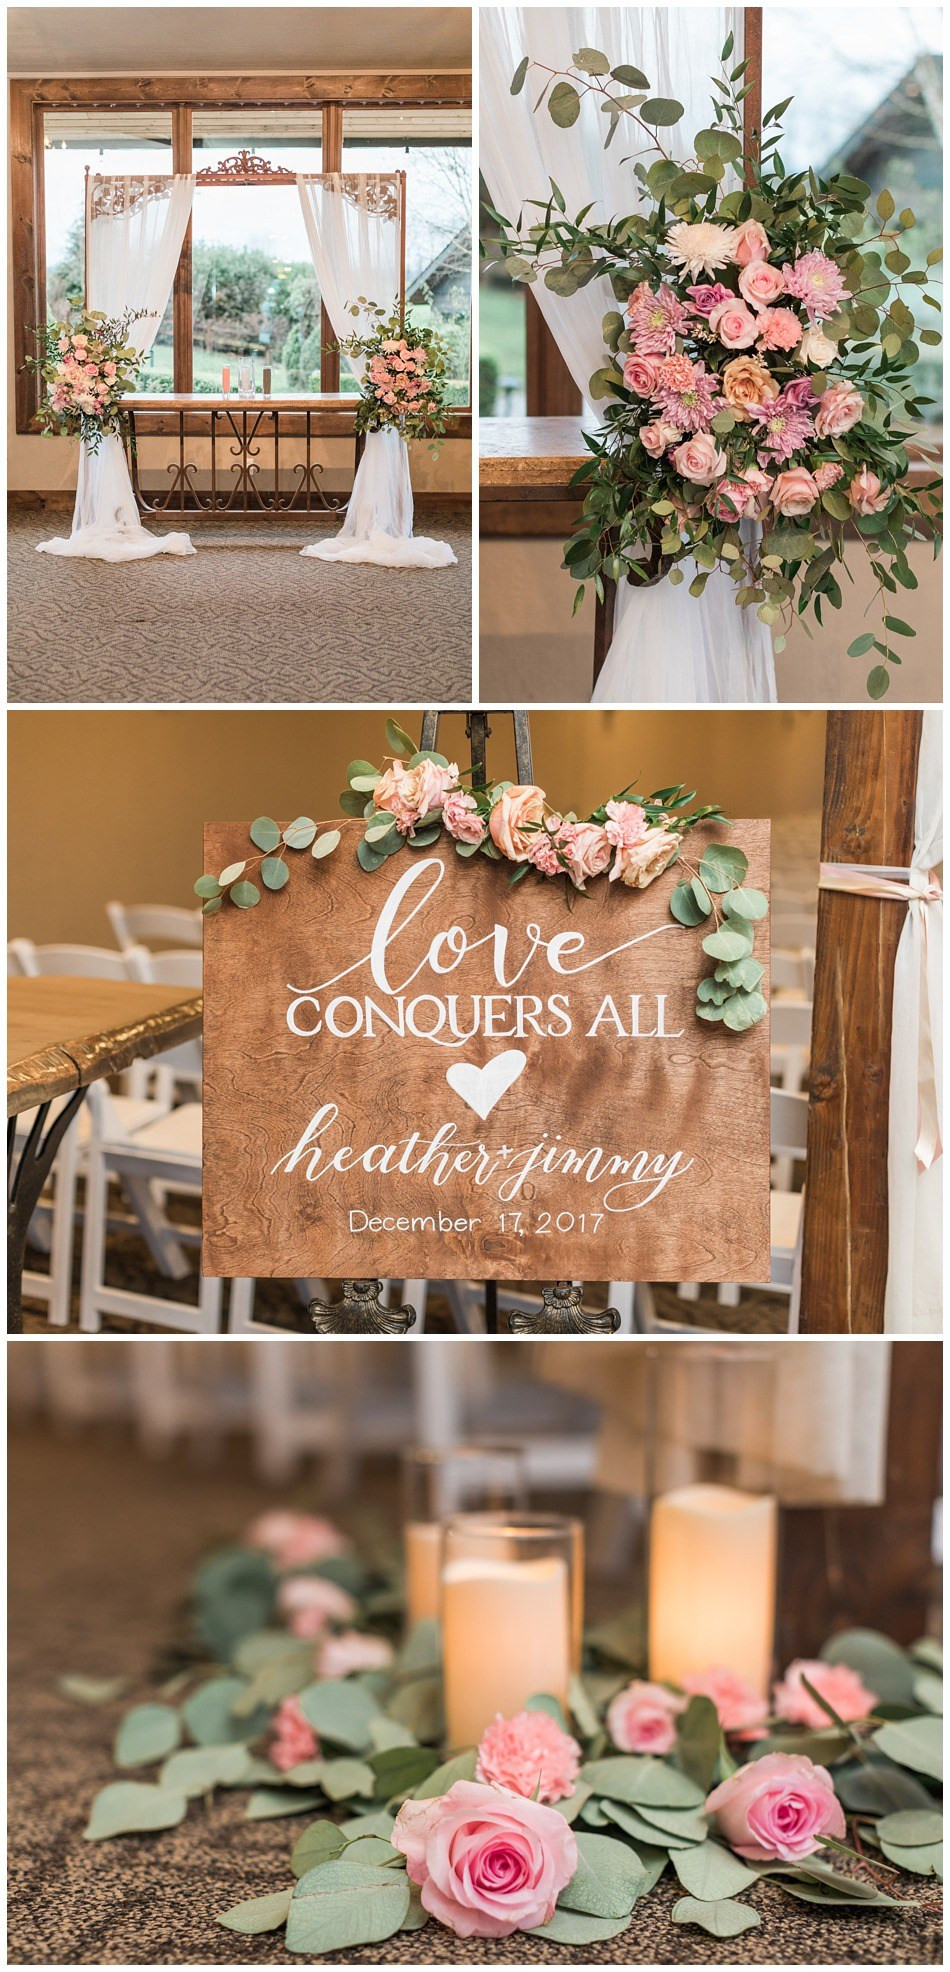 Photos of the decor and floral arrangements from a wedding at Hidden Meadows in Snohomish, a wedding venue near Seattle.